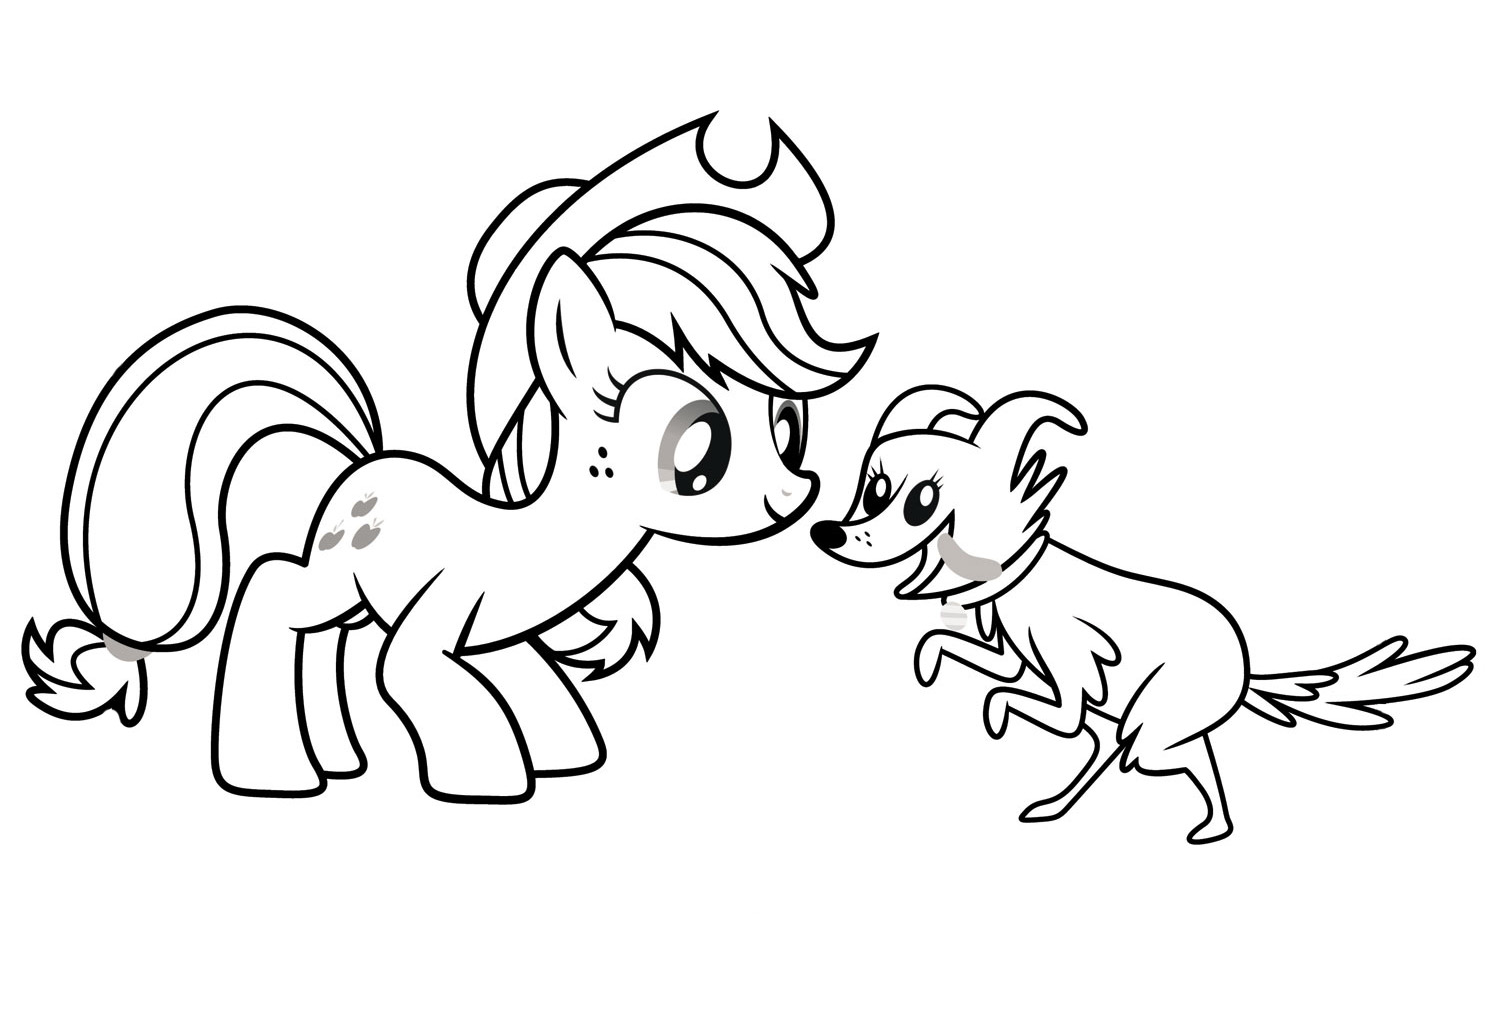 Applejack Coloring Pages - Best Coloring Pages For Kids